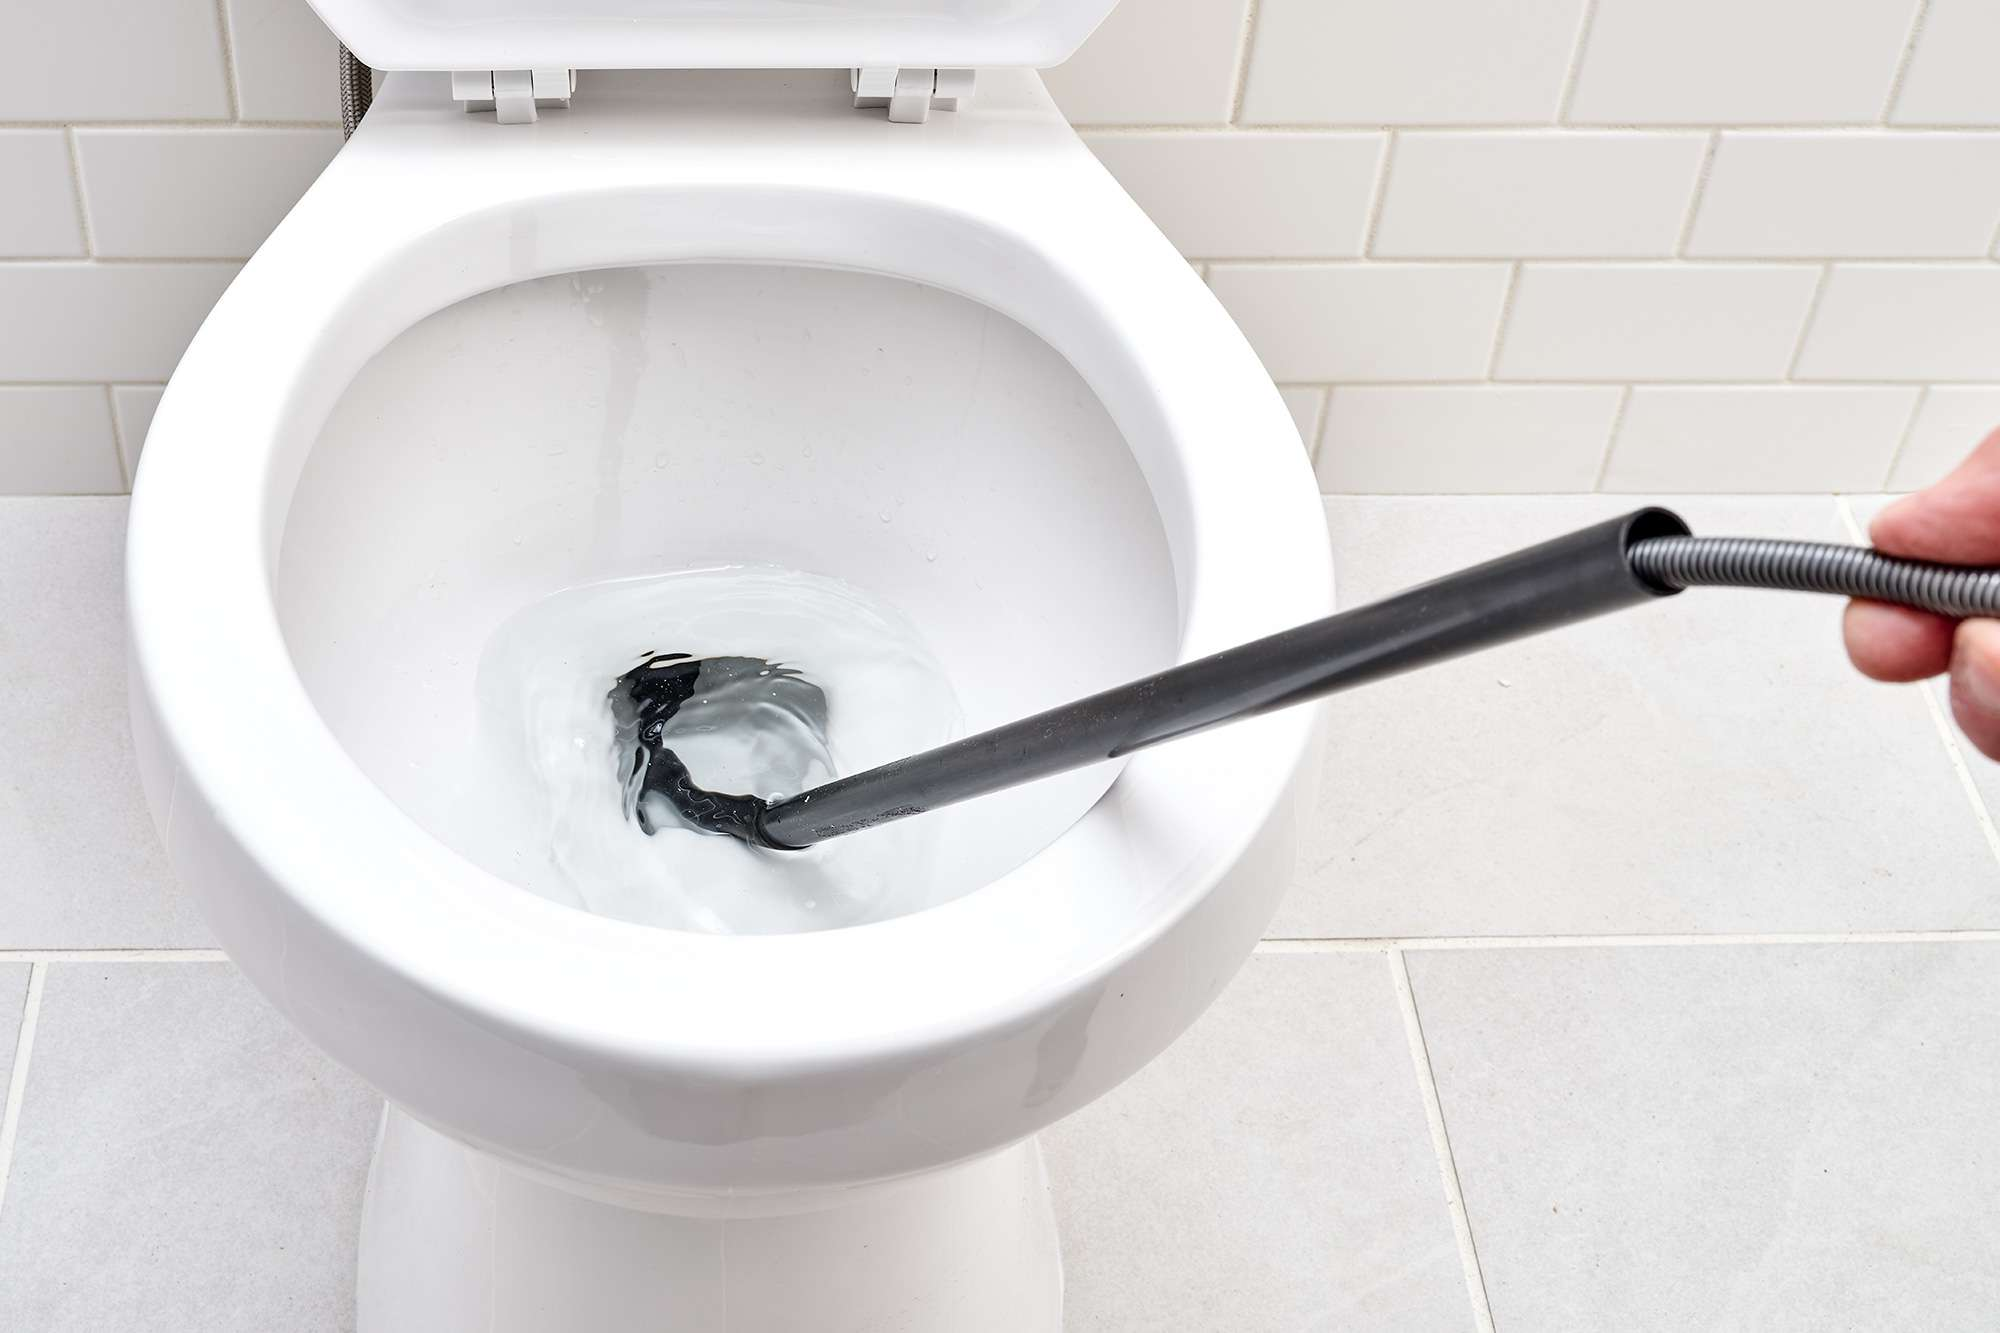 Cable extended on toilet auger to move through trap bends